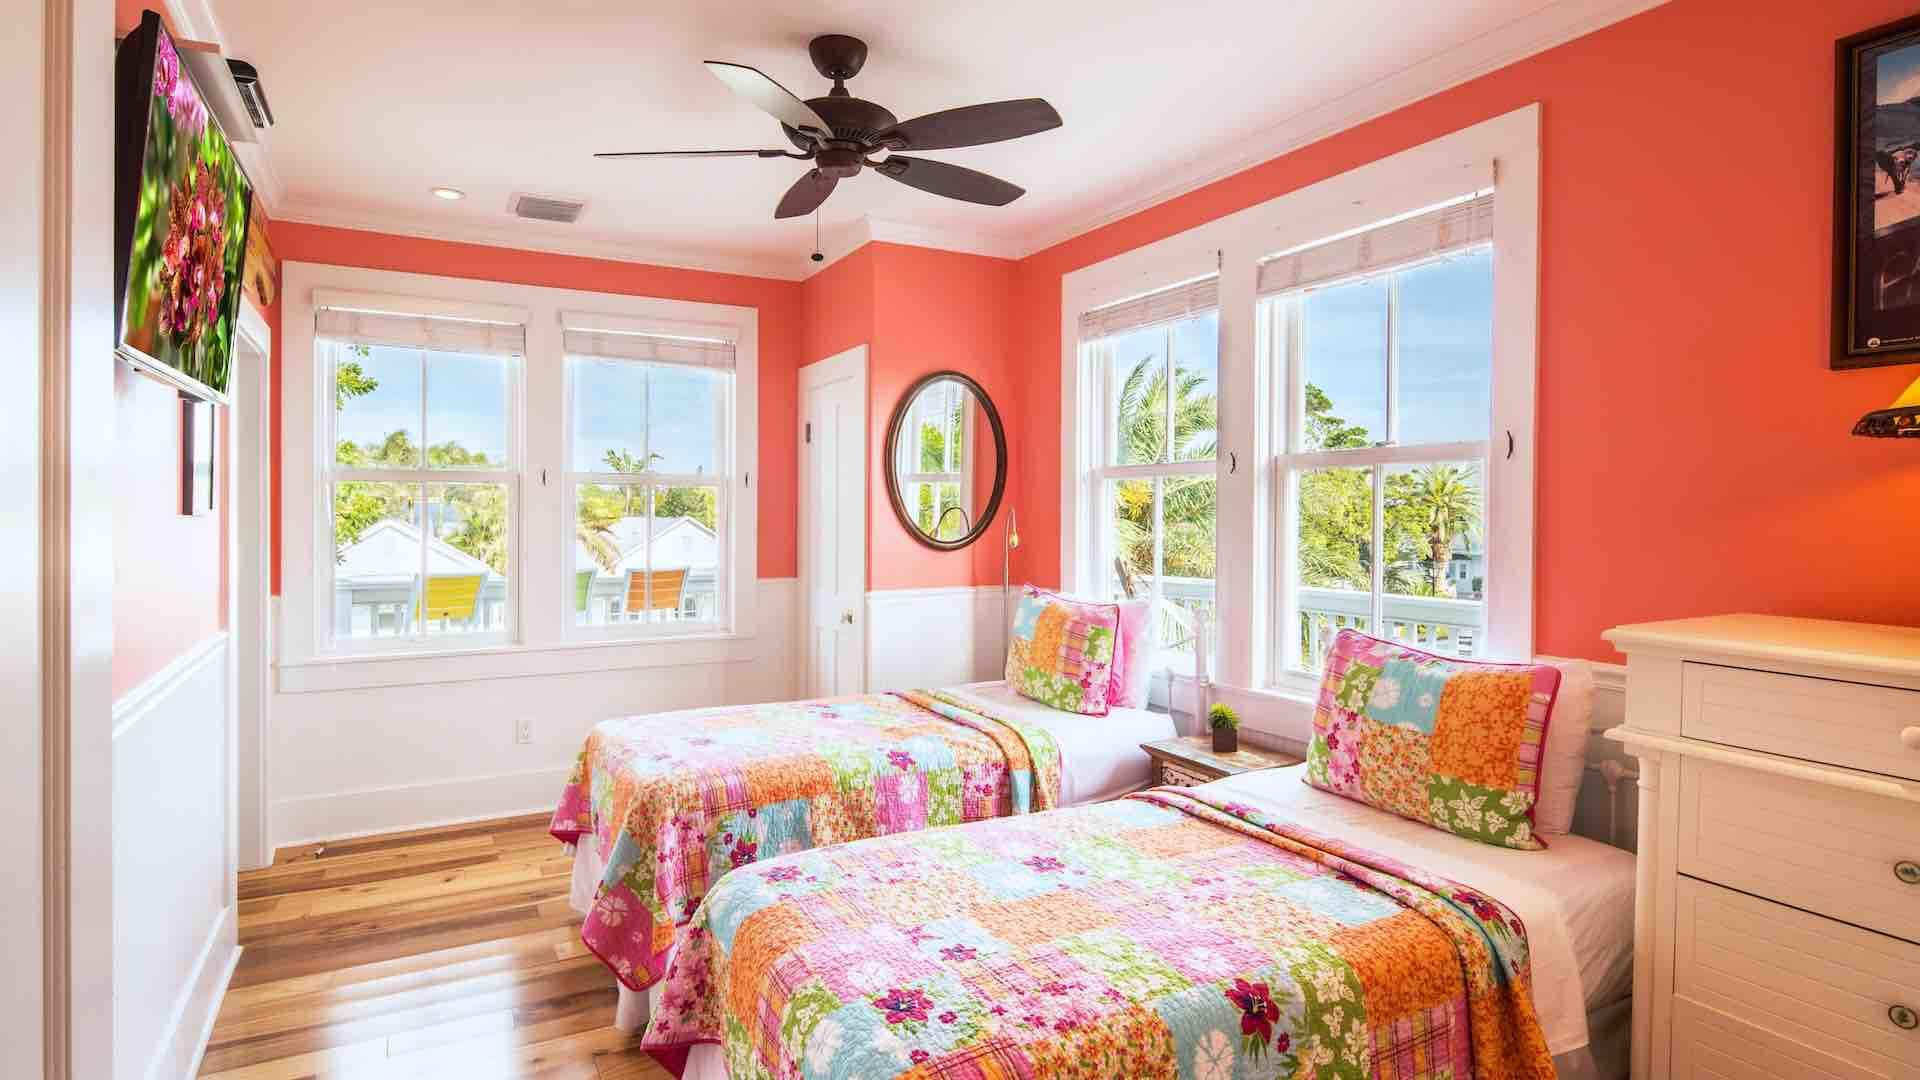 The fifth bedroom is the Jimmy Buffet Room...